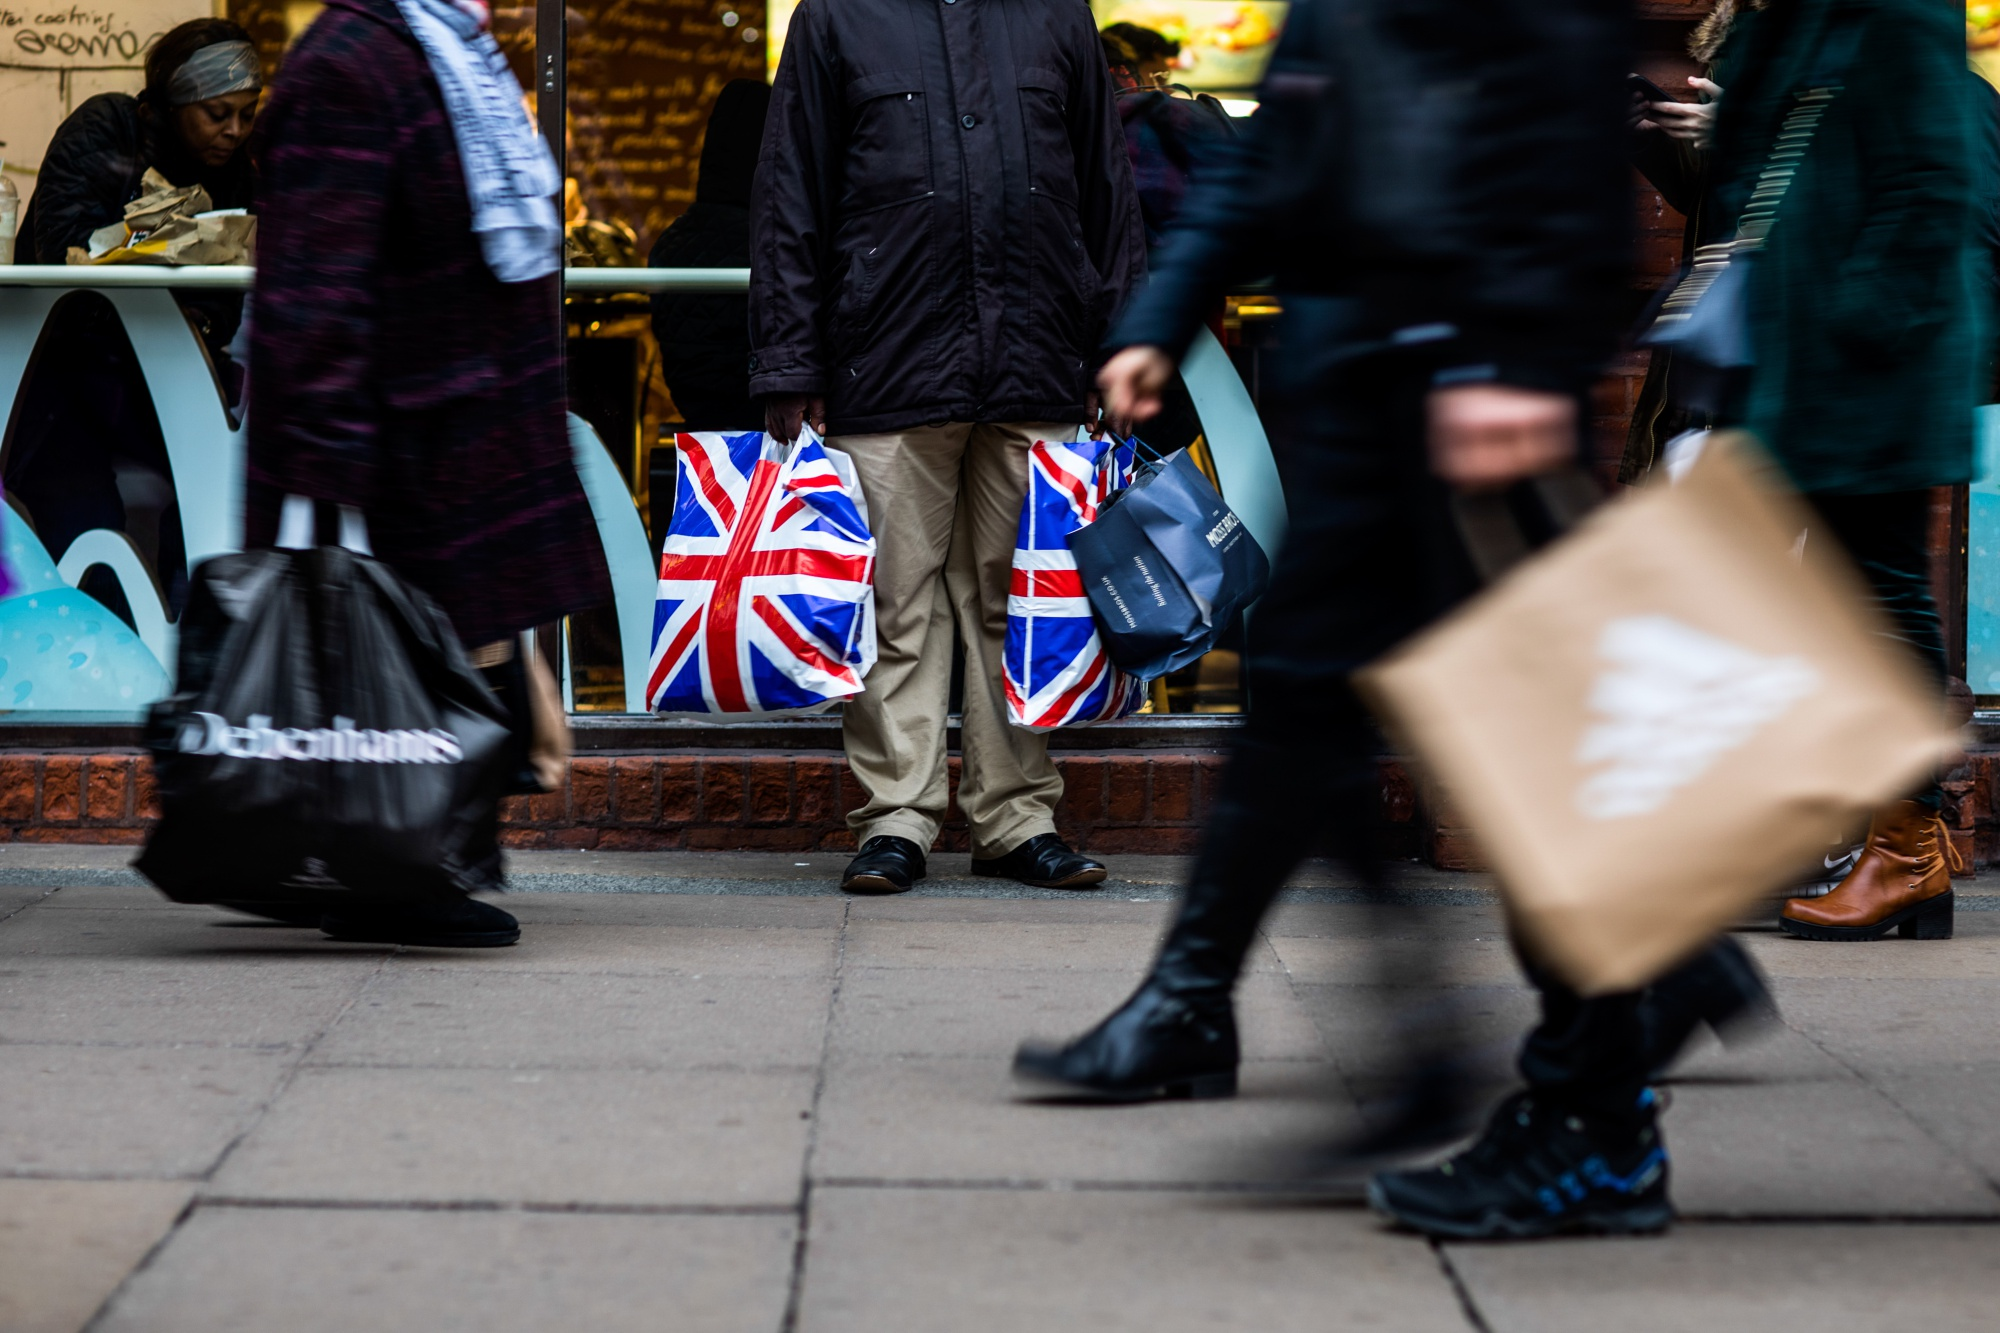 A pedestrian holds shopping bags branded with the Union Flag, also know as Union Jack, on Oxford Street in central London, U.K., on Tuesday, Dec. 4, 2018.